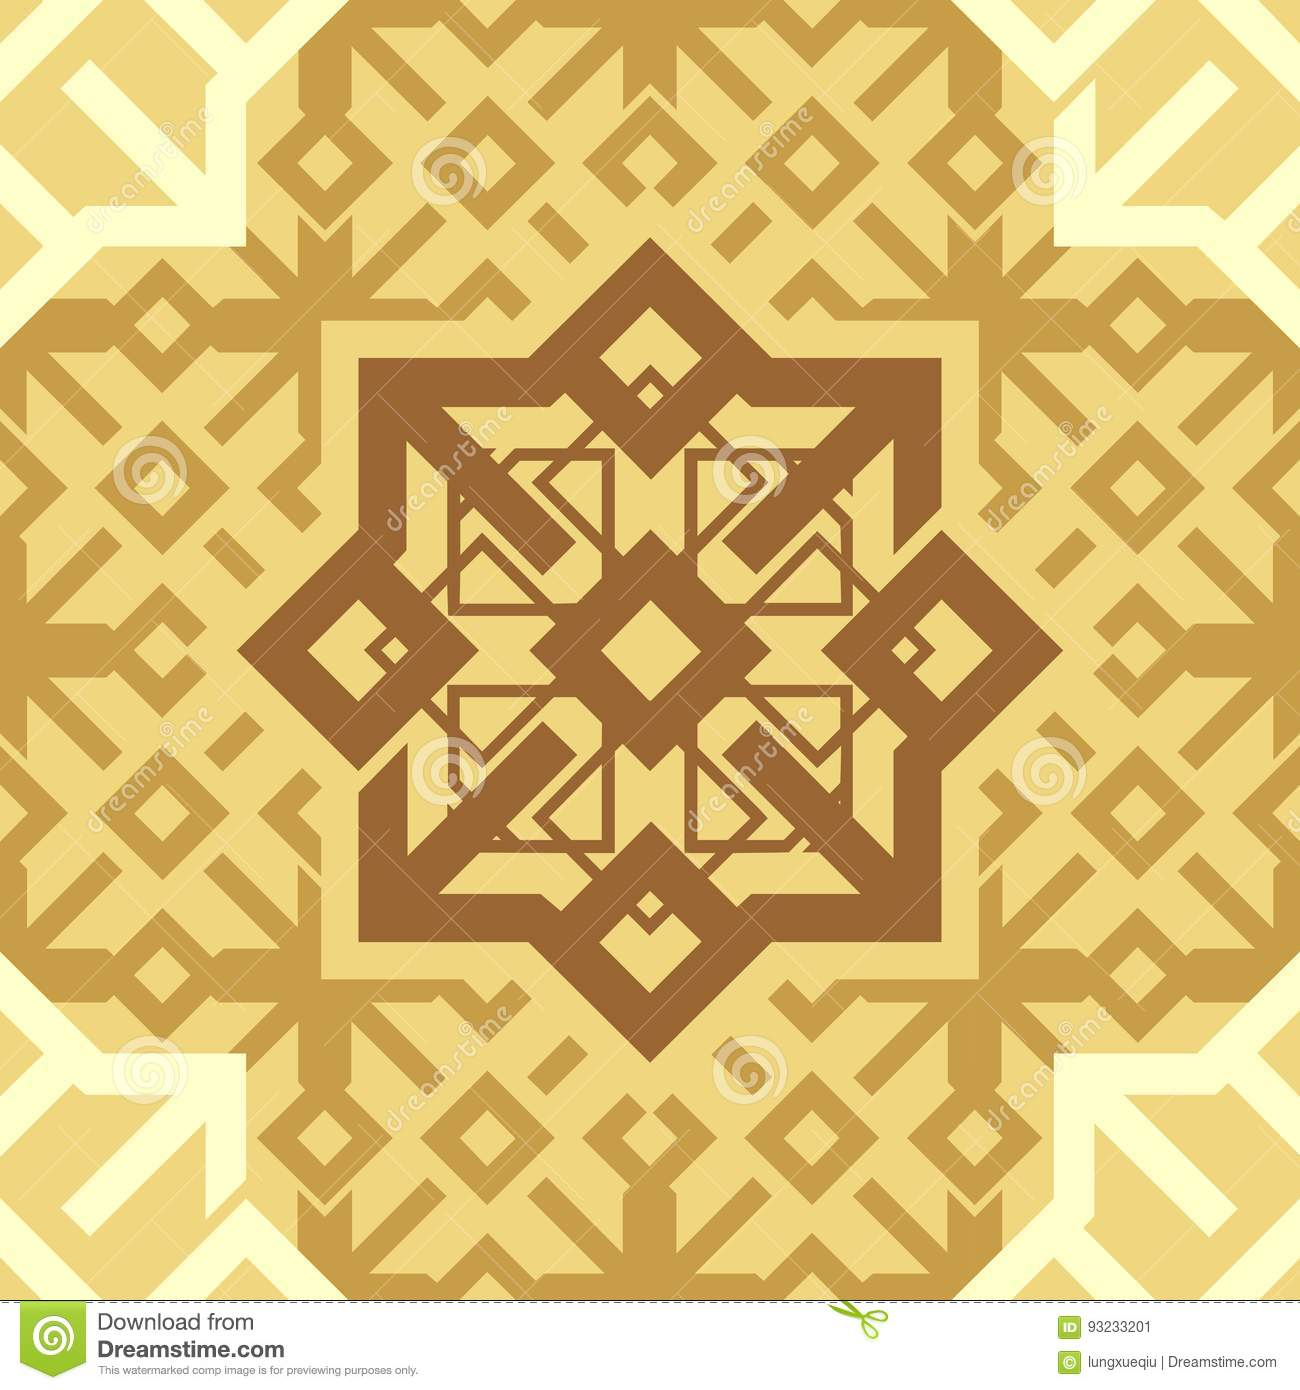 Ornament Cappuccino Coffee Brown Repetitive Seamless Pattern Tile Texture Vector Background.